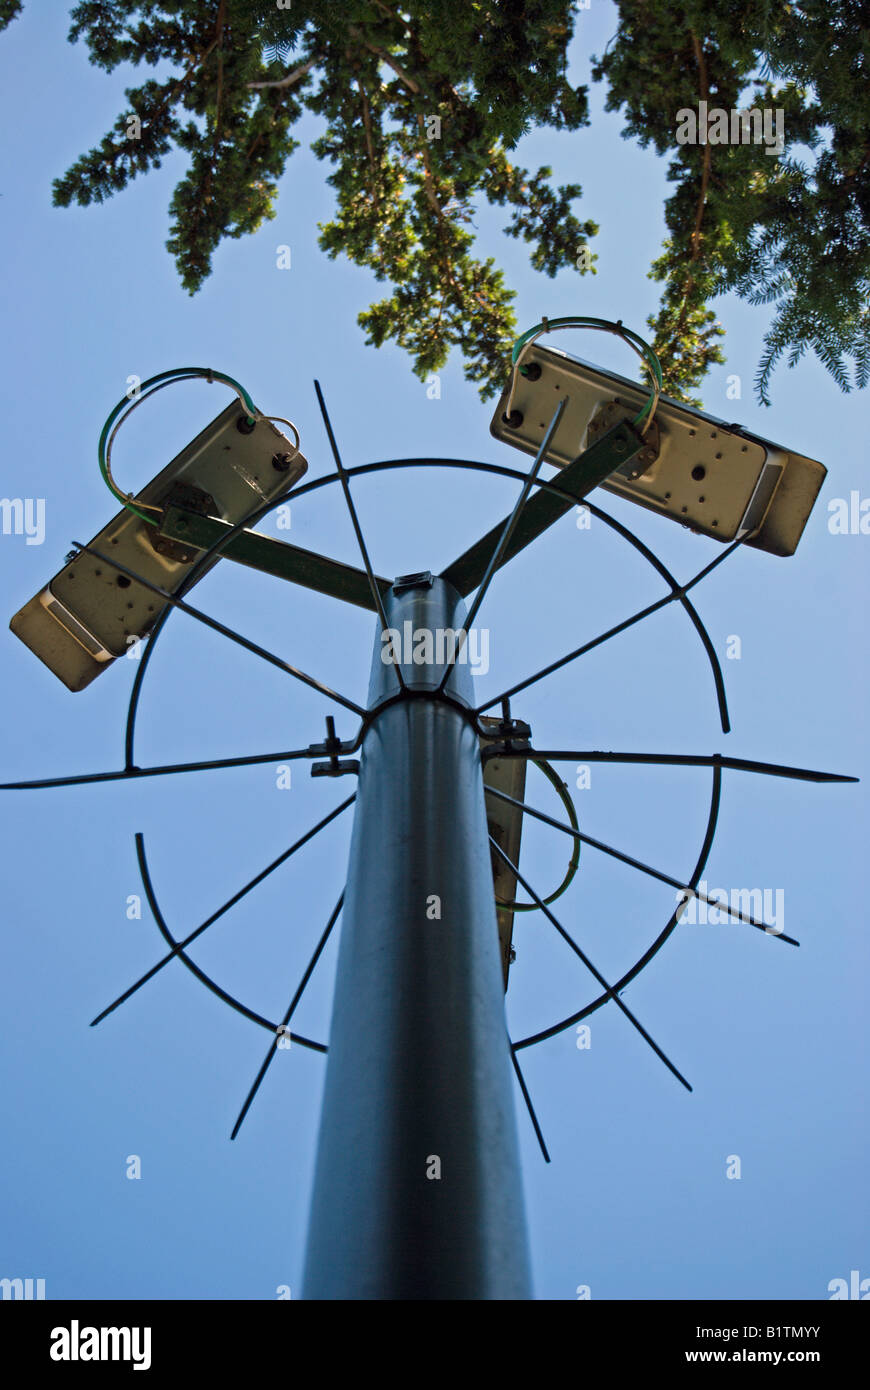 seen against a blue sky and the overhanging branches of a tree, three cctv cameras on a pole protected by a metal - Stock Image